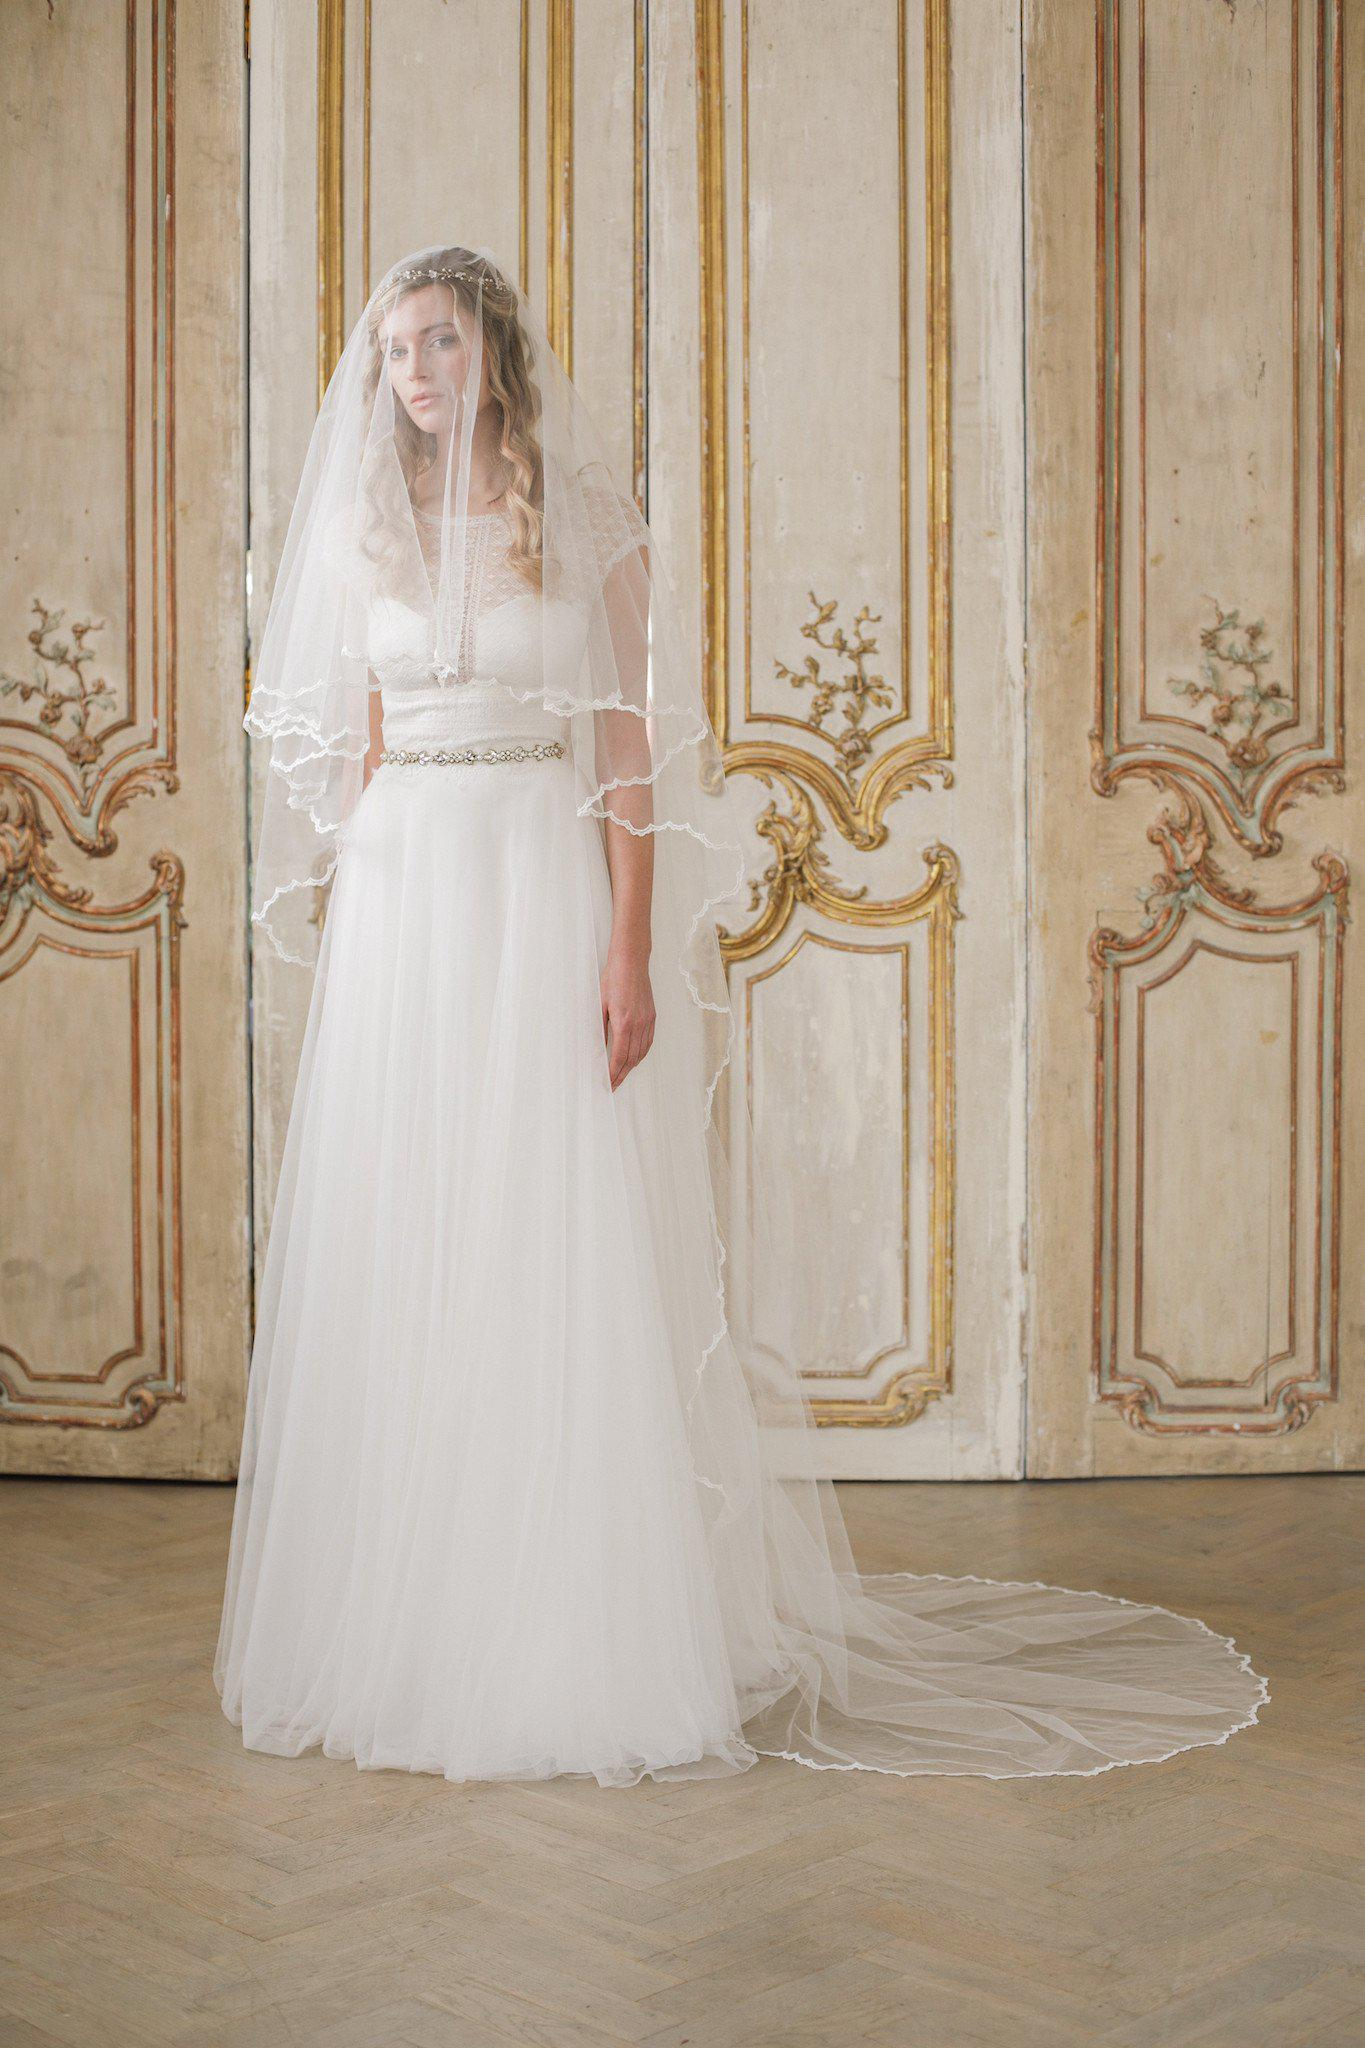 Delicate lace edged two tier wedding veil - 'Millie'